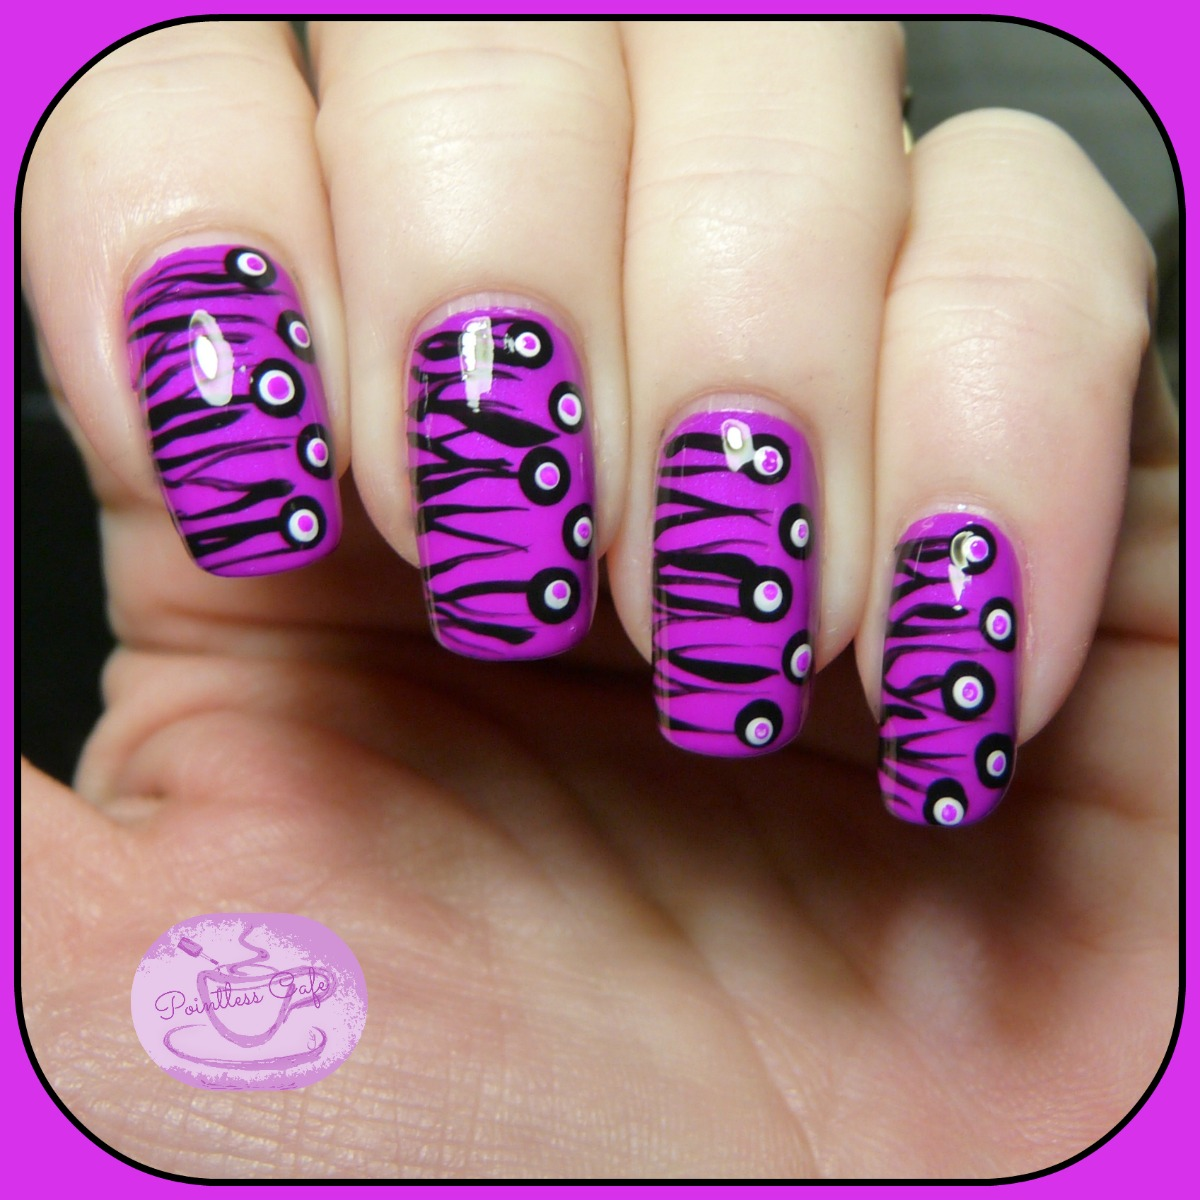 13 Days of January Nail Art Challenge: Half and Half | Pointless Cafe